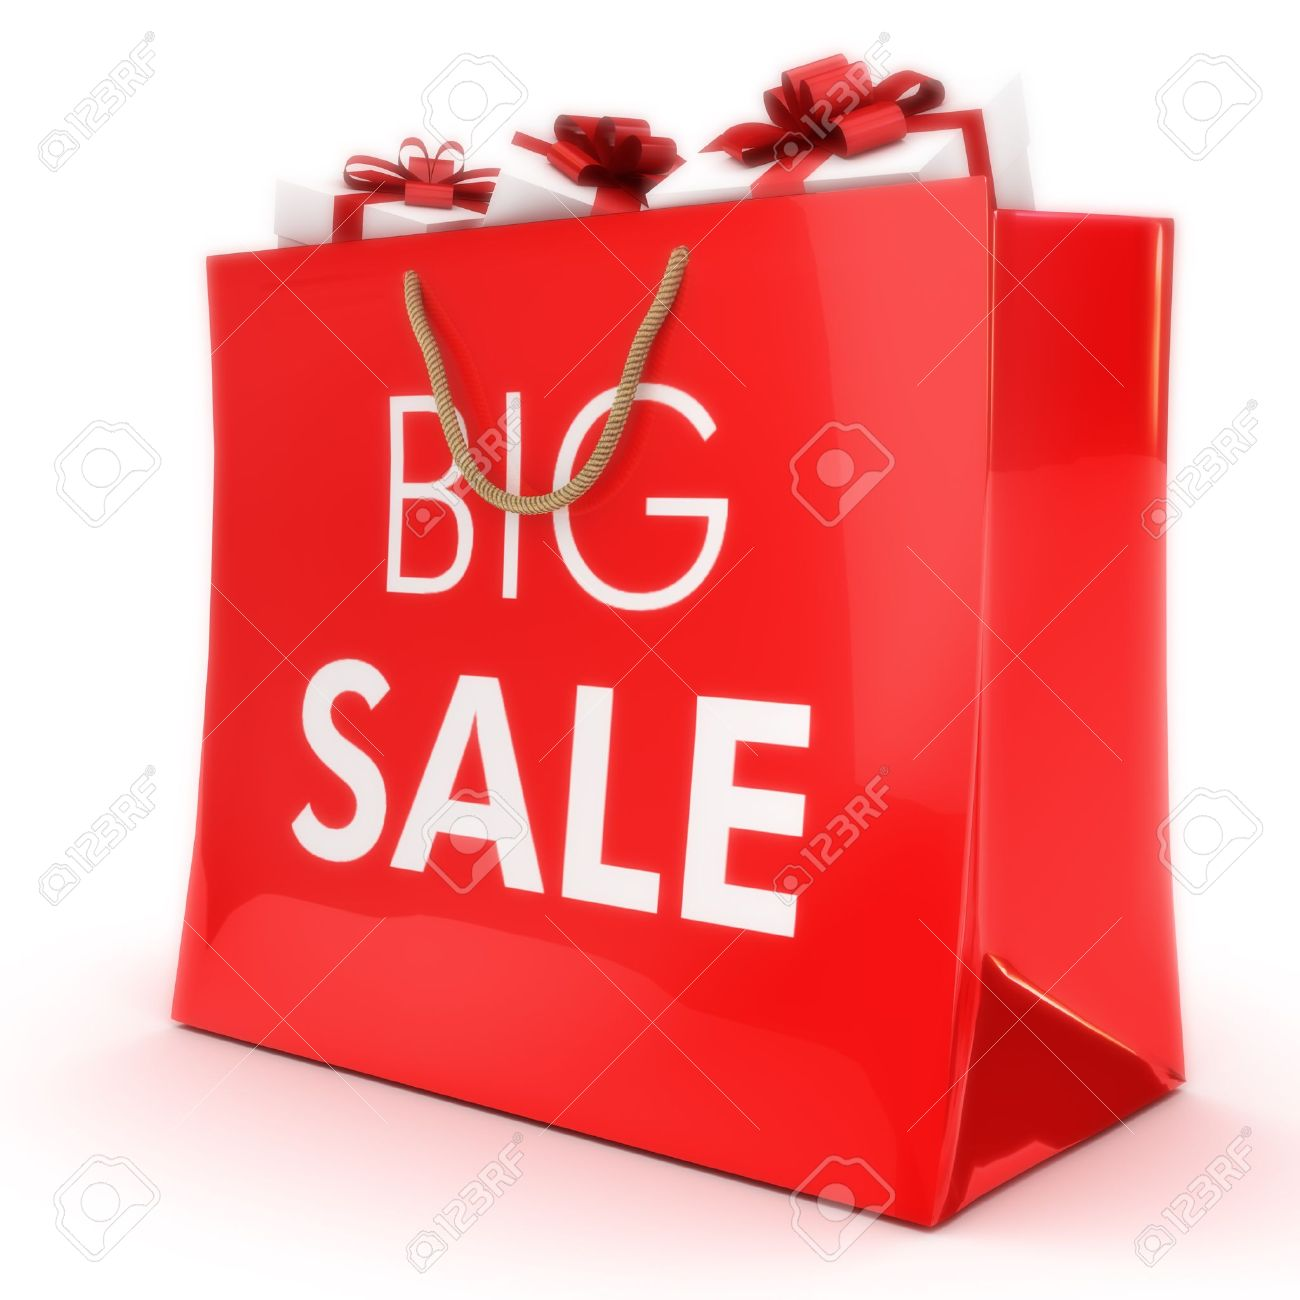 Big sale ,gift bag with gifts, Part of a series Stock Photo - 11083848